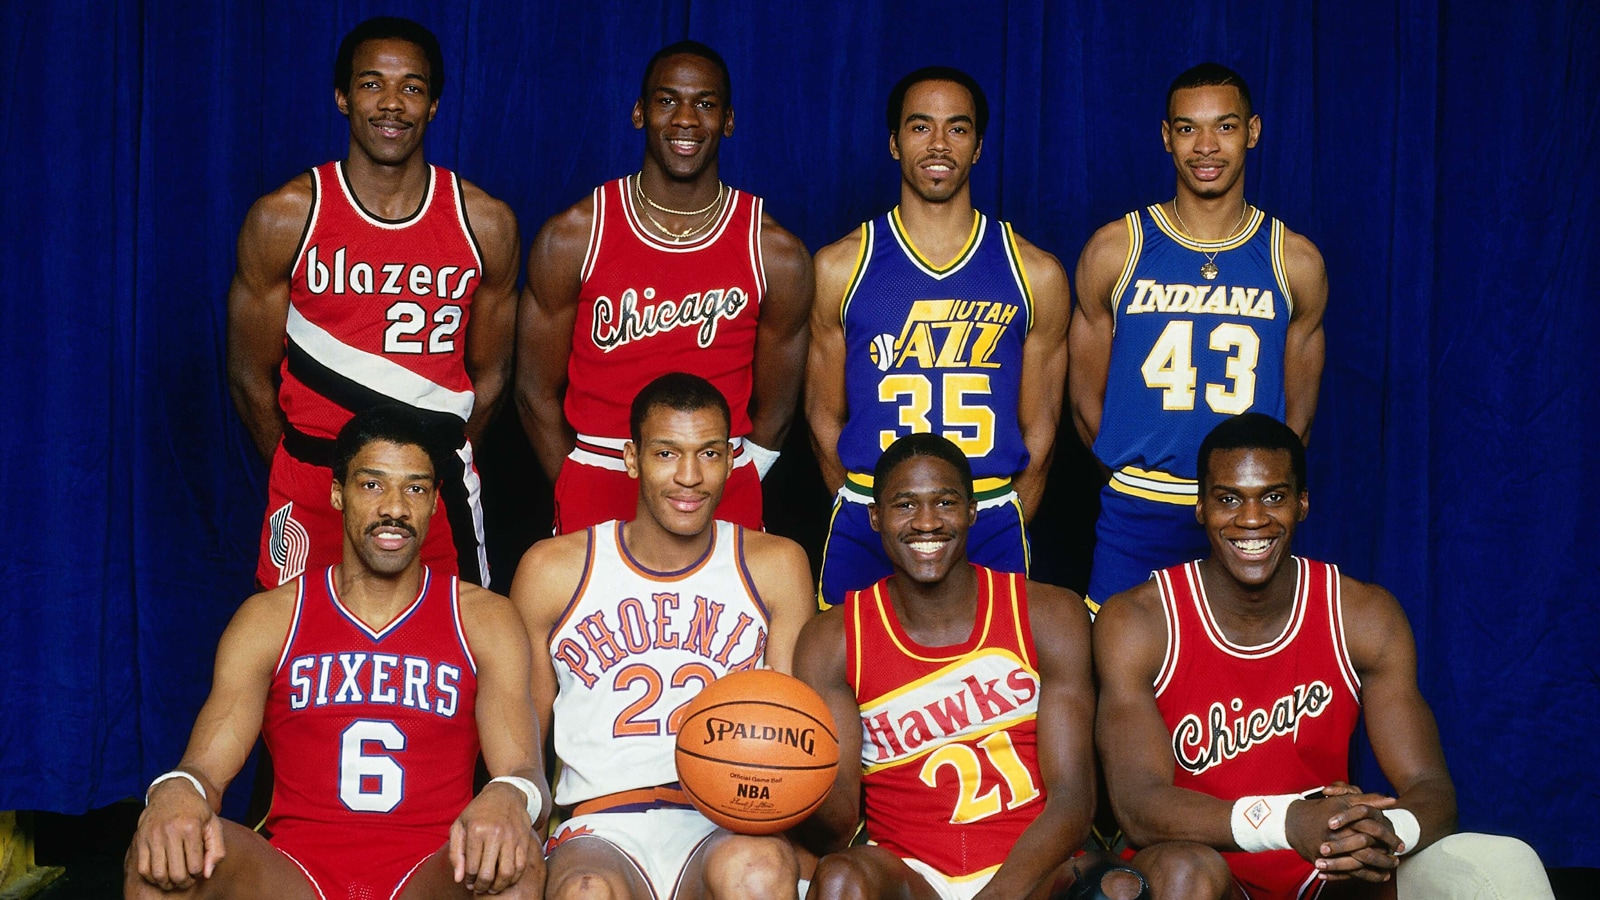 Michael Jordan poses with fellow All-Star slam dunk contest participants, including Julius Erving, in 1985.